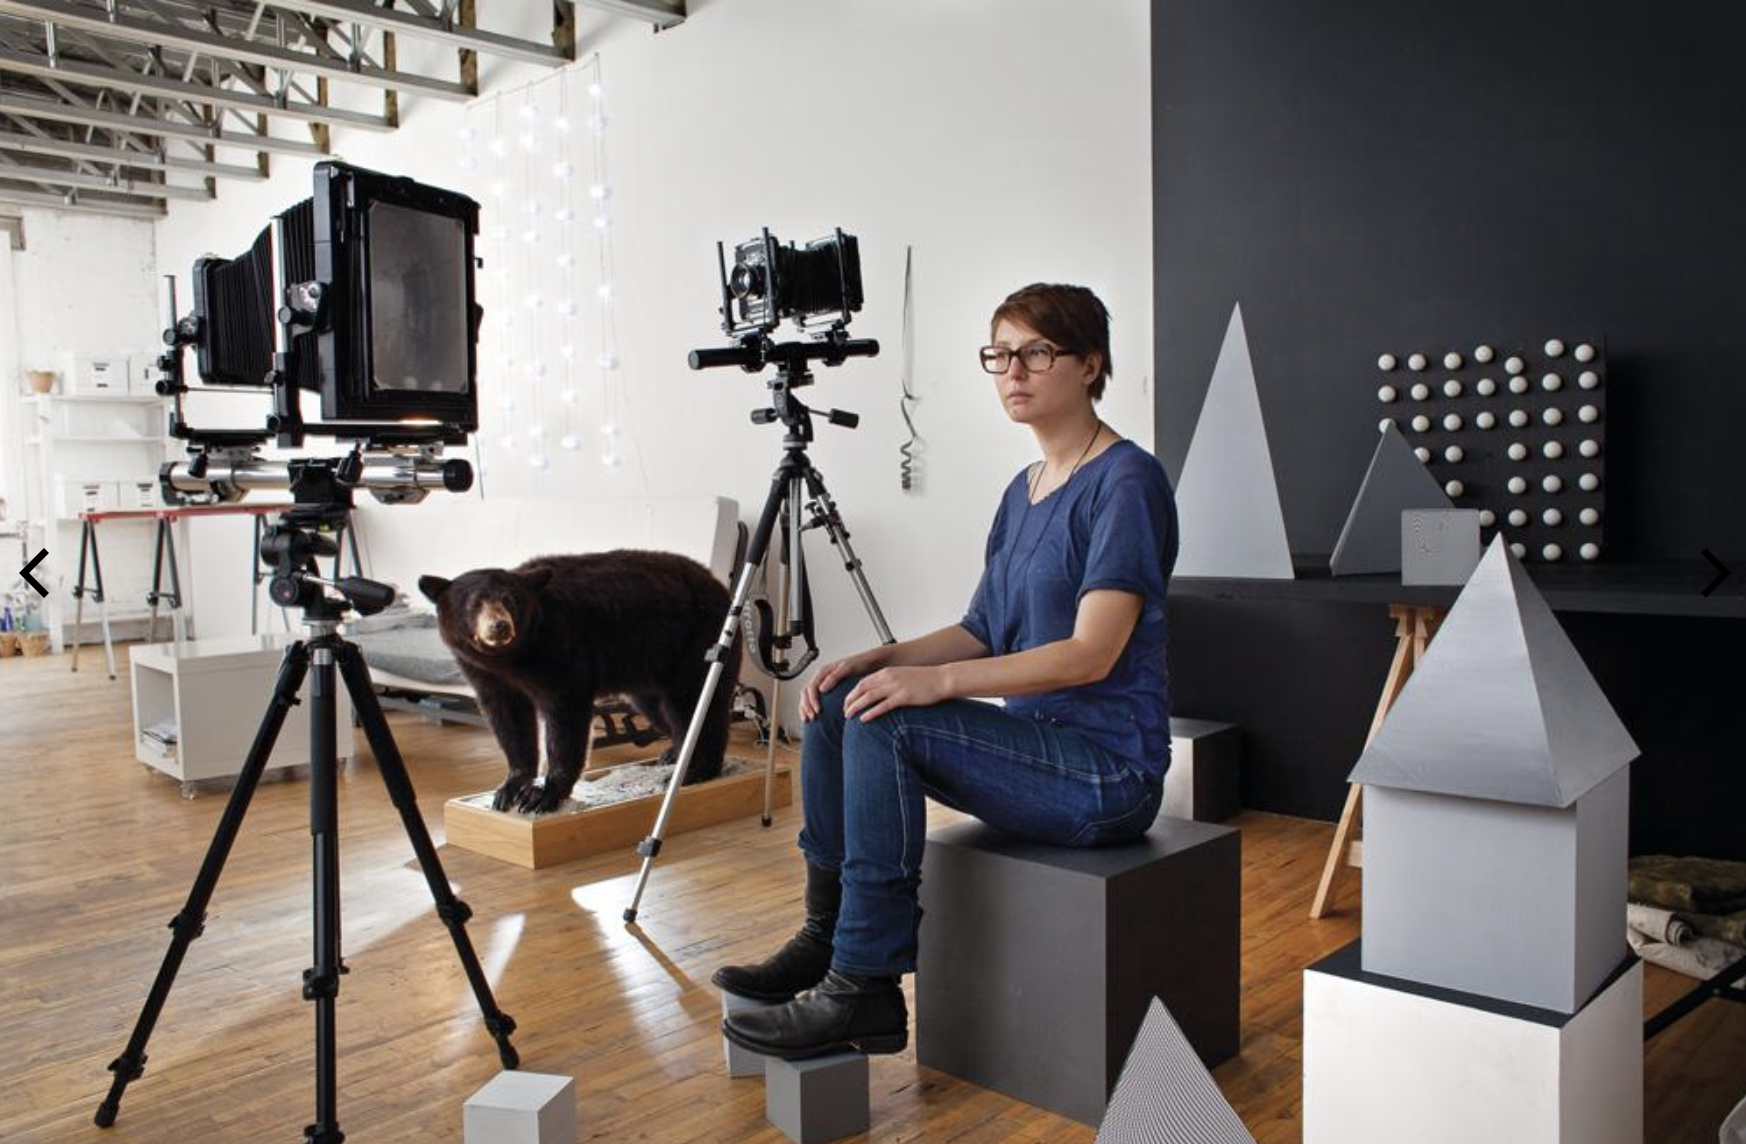 Canadian Art | Lenscraft: Jessica Eaton Asks Us to Think About What We See